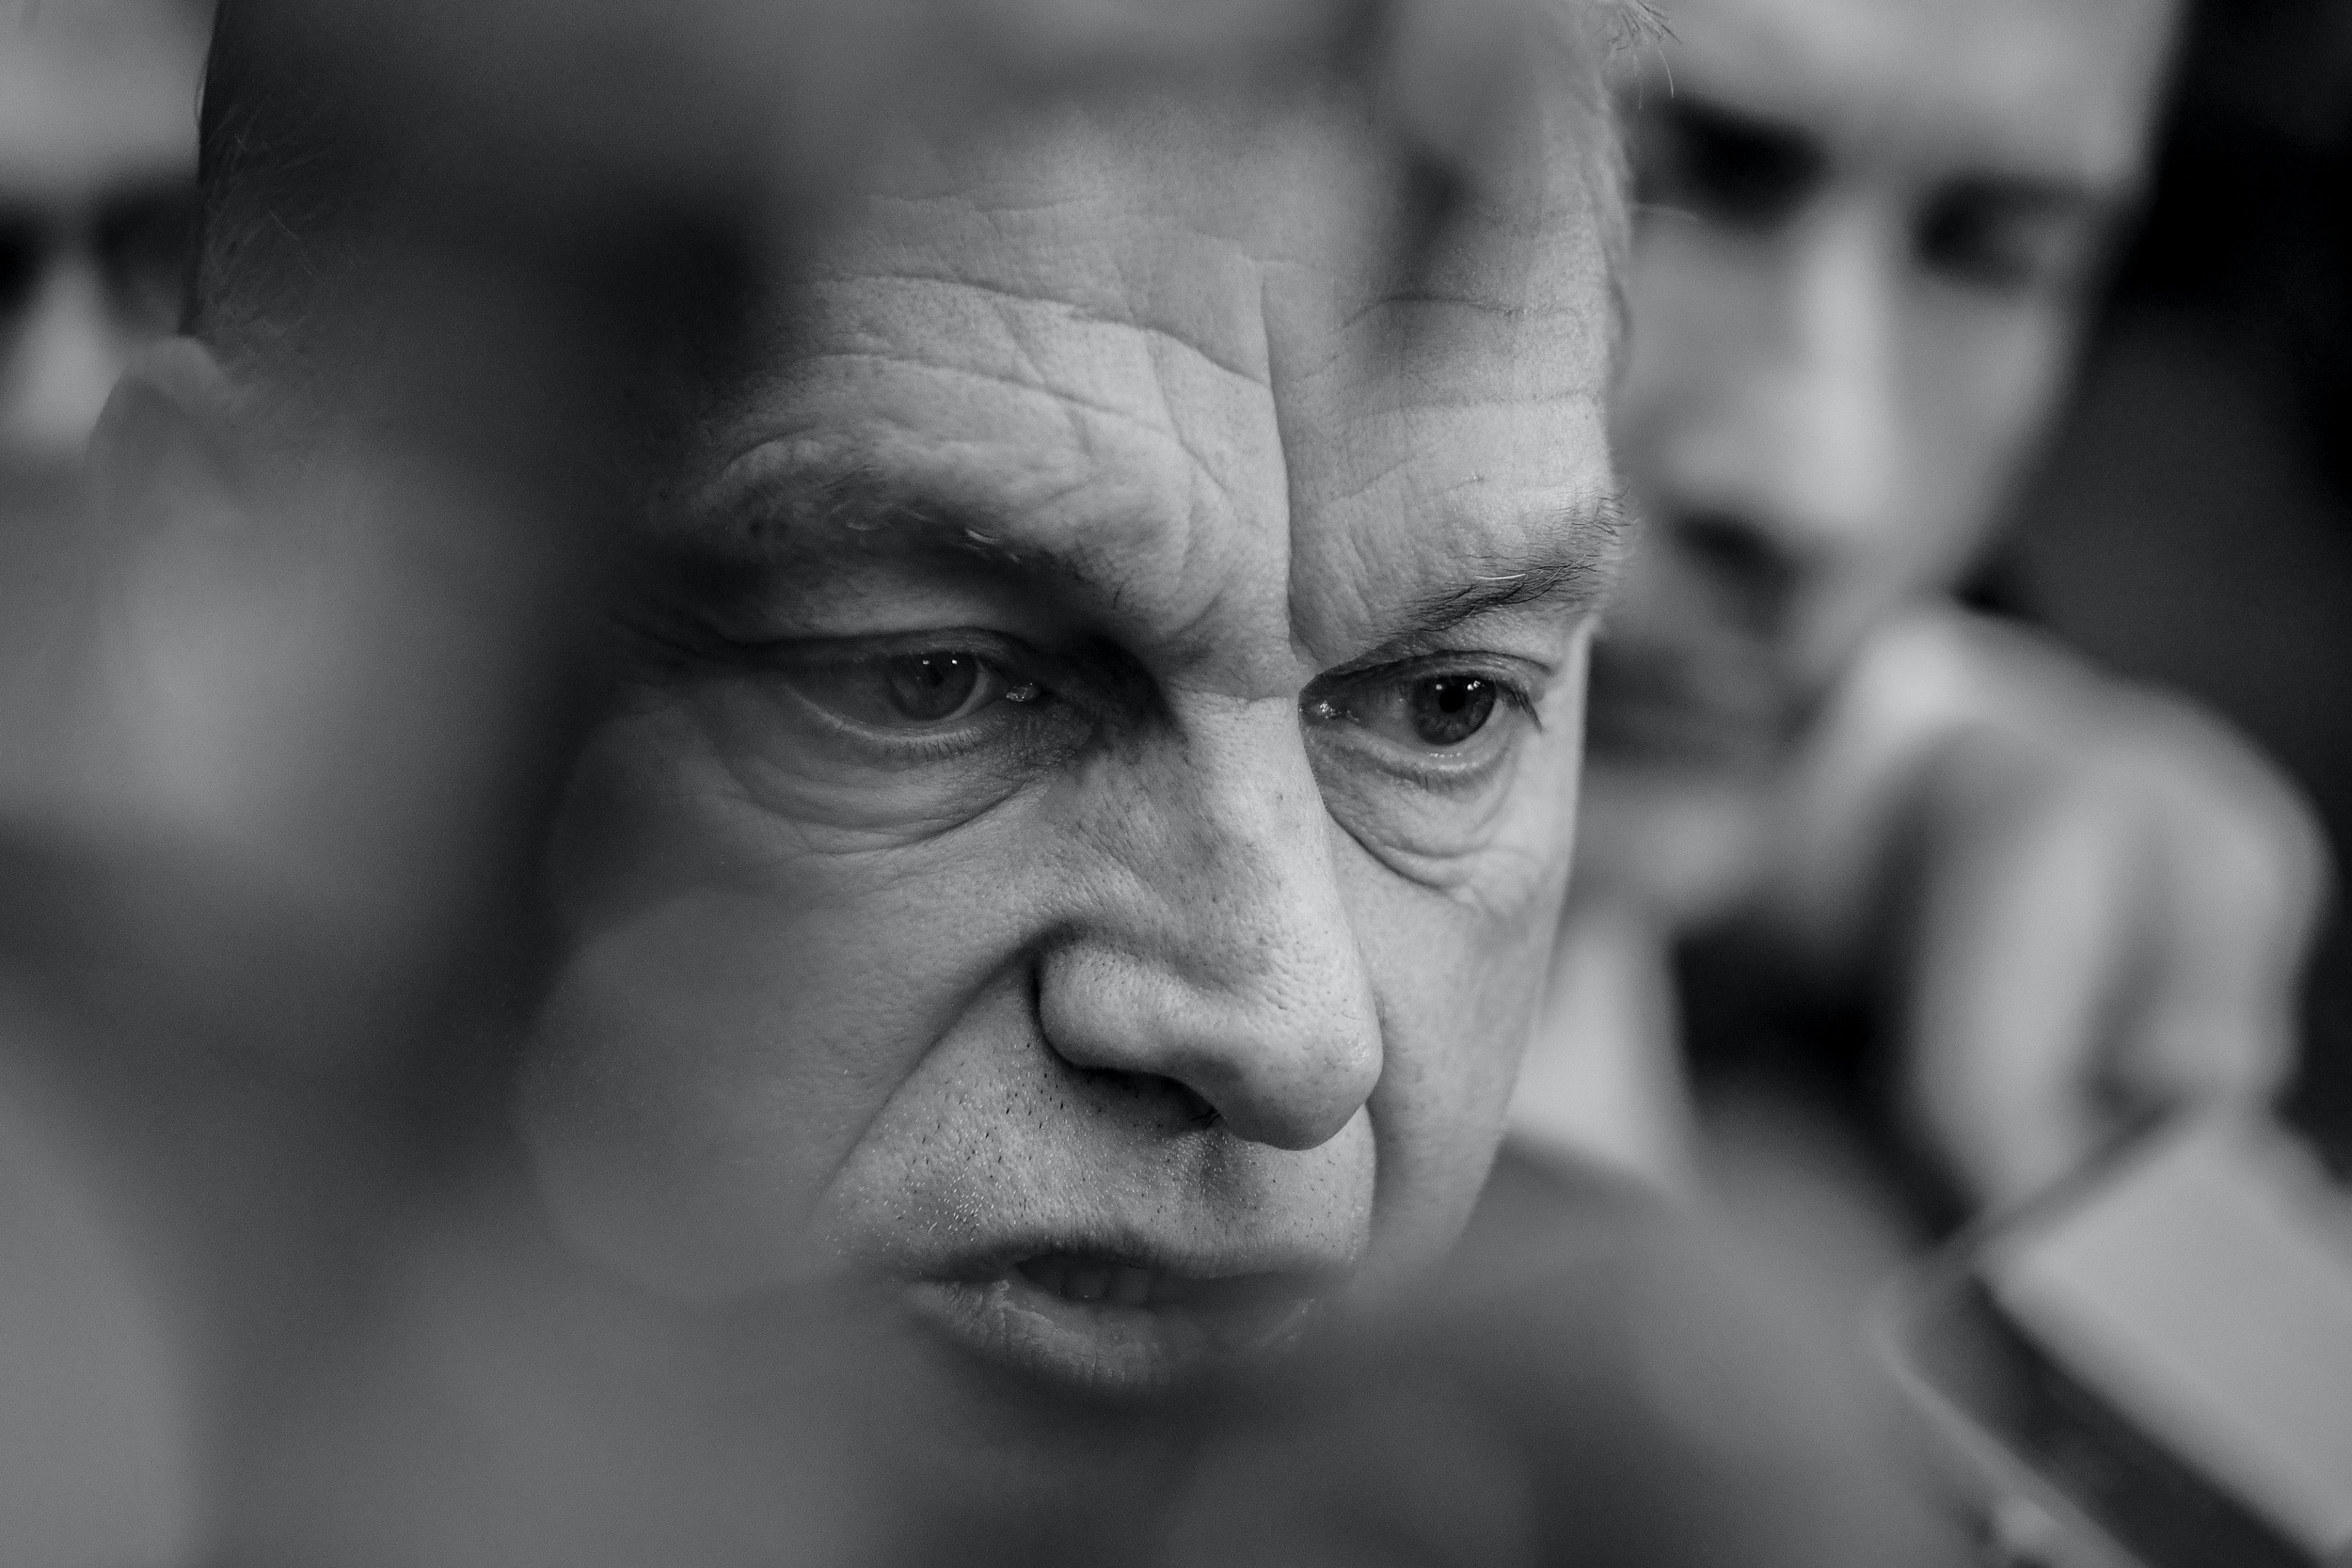 (EDITOR'S NOTE: Image was converted to black and white) Prime Minister of Hungary Viktor Orban in Brussels, Belgium, on February 21, 2020 (Photo by Riccardo Pareggiani/NurPhoto via Getty Images)